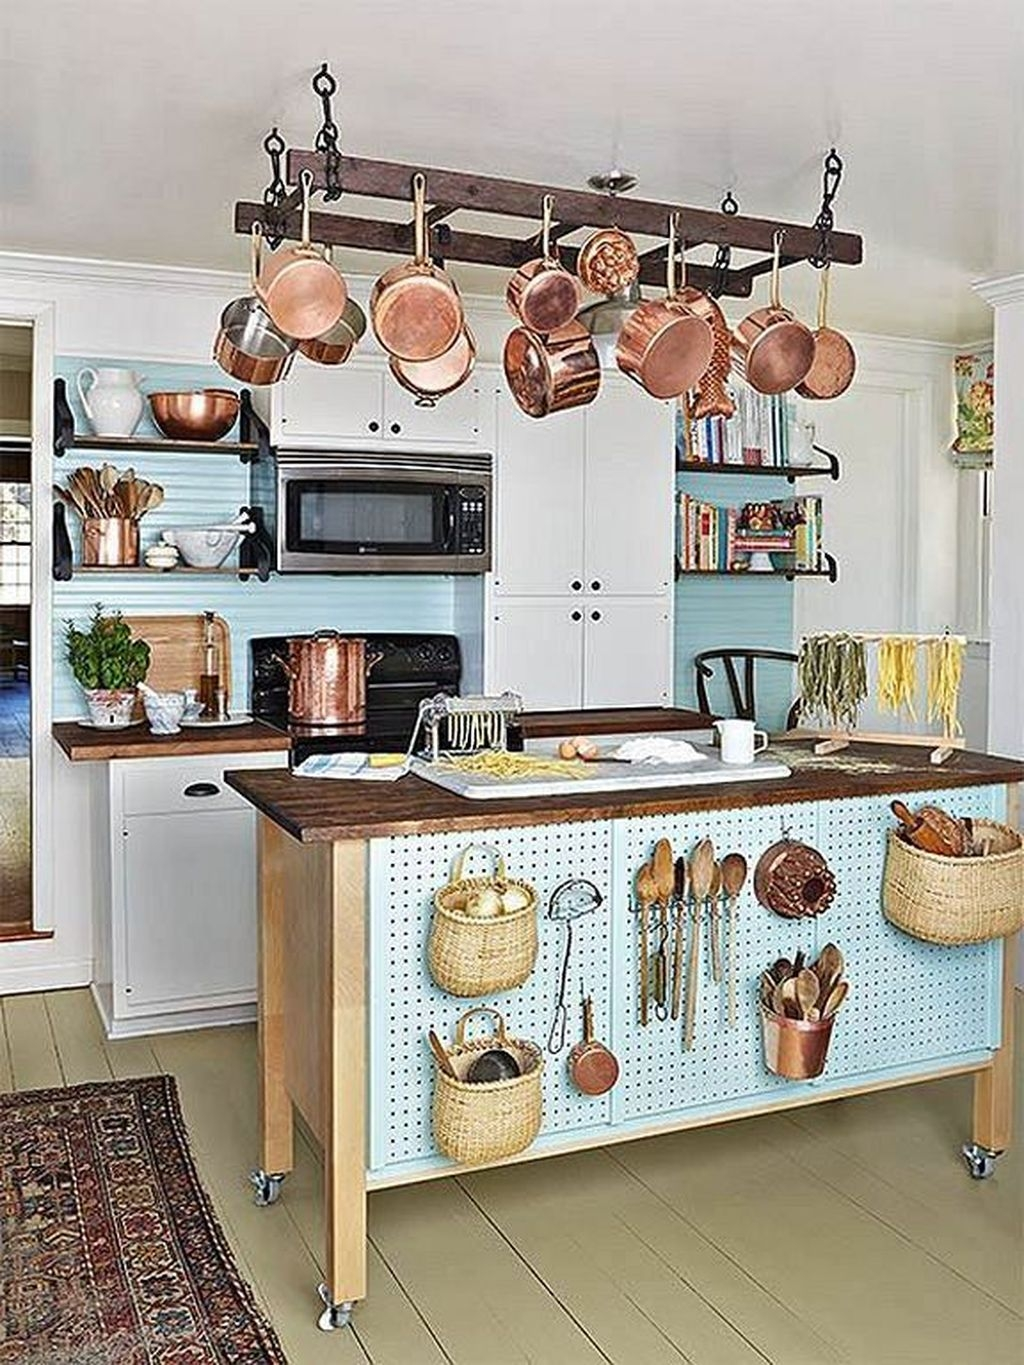 Awesome Small Kitchen Remodel Ideas15